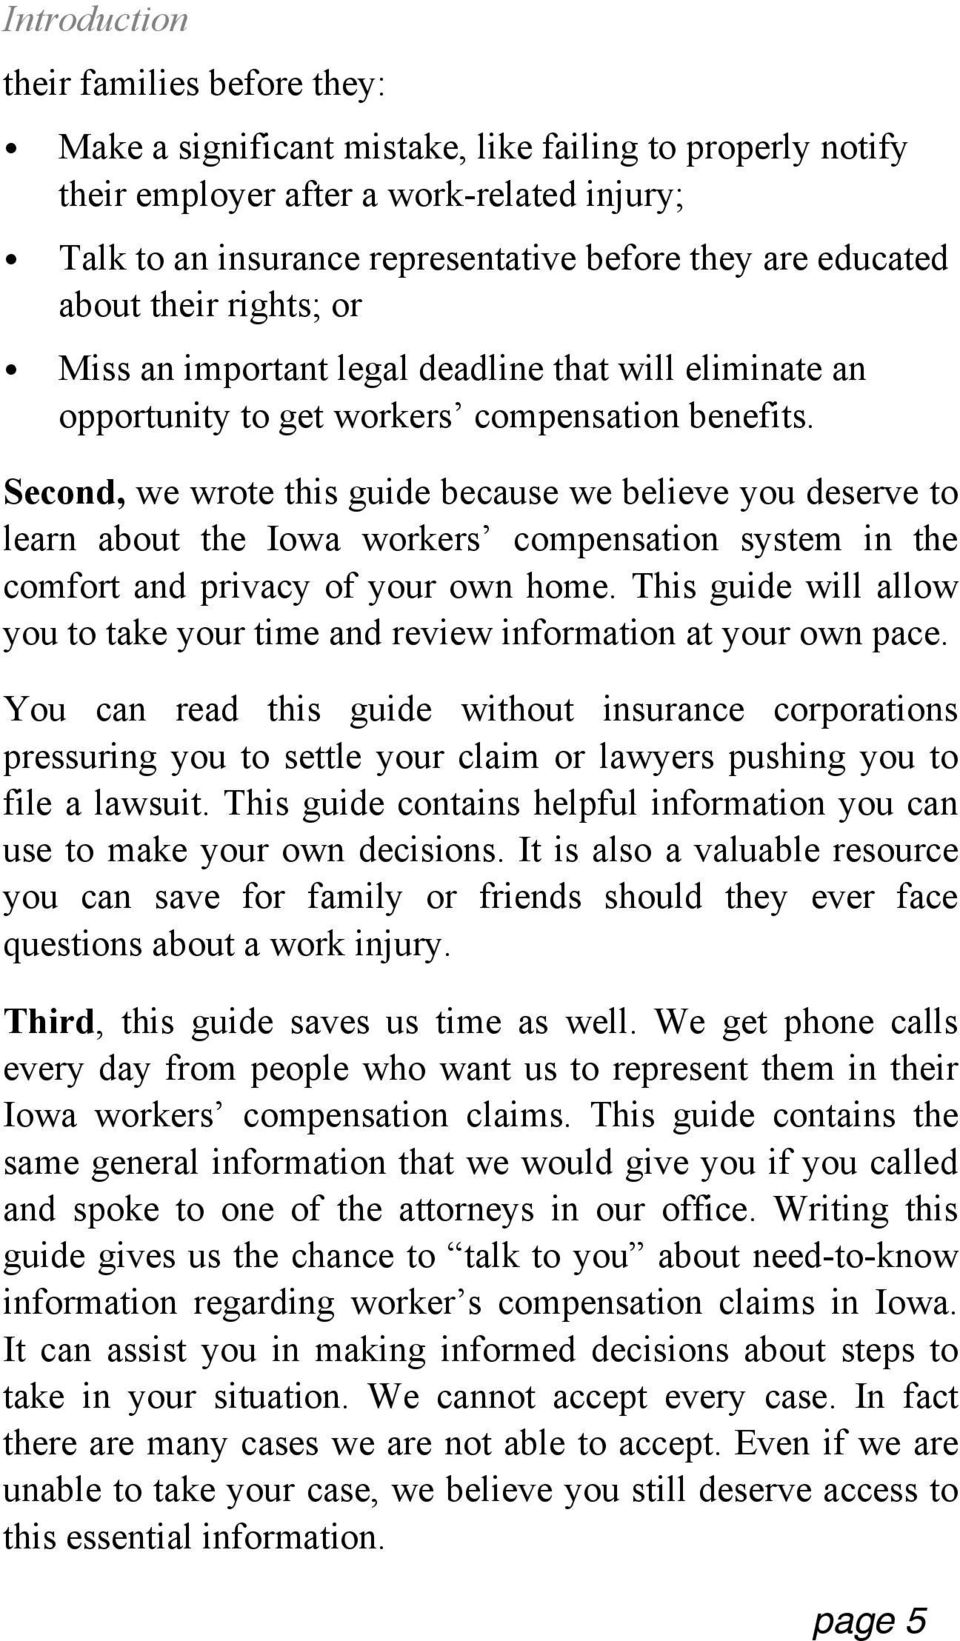 Second, we wrote this guide because we believe you deserve to learn about the Iowa workers compensation system in the comfort and privacy of your own home.